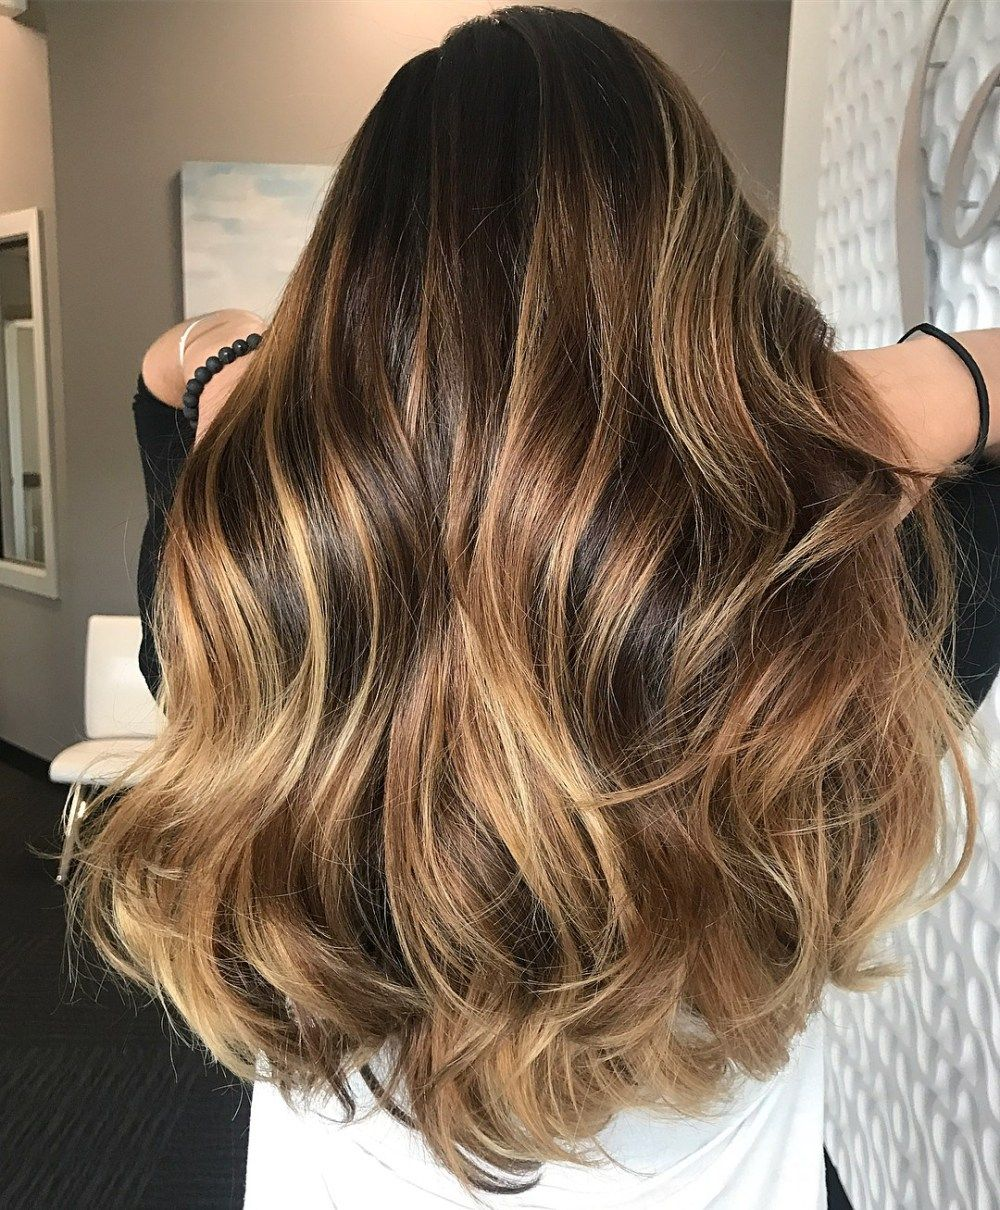 20 Ideas Of Honey Balayage Highlights On Brown And Black Hair Brunette Hair Color Blonde Hair Color Honey Balayage